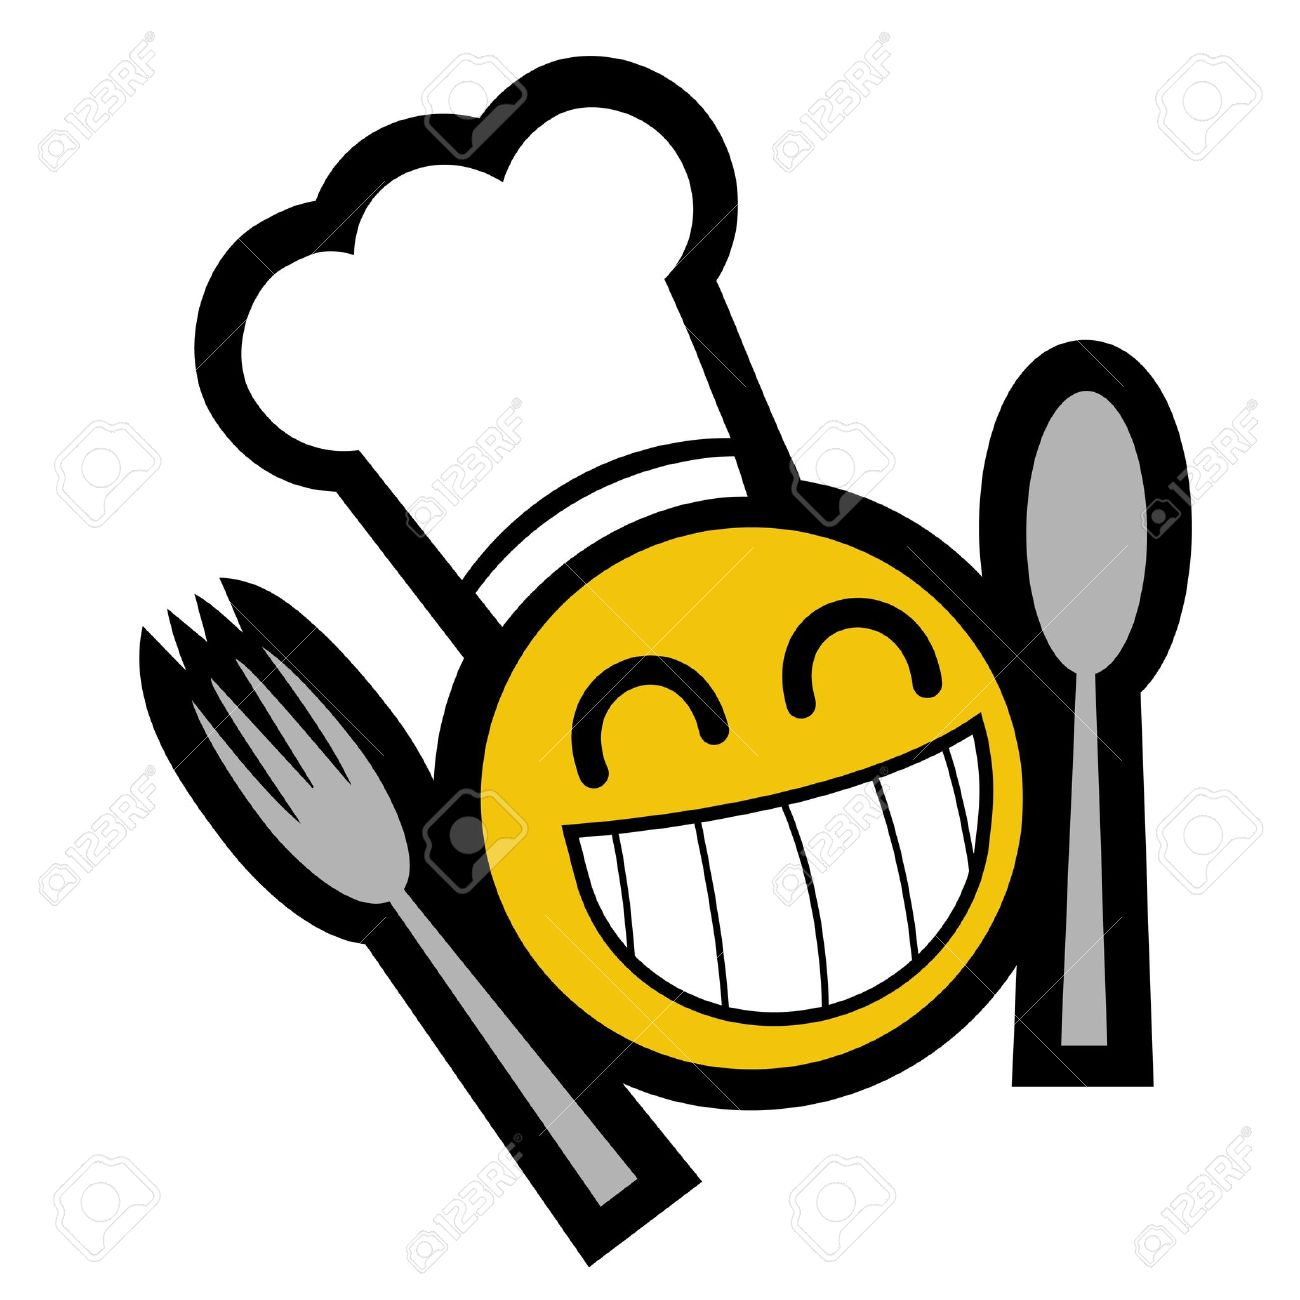 1300x1300 Drawing Smiley Face With Eating Utensils Royalty Free Cliparts